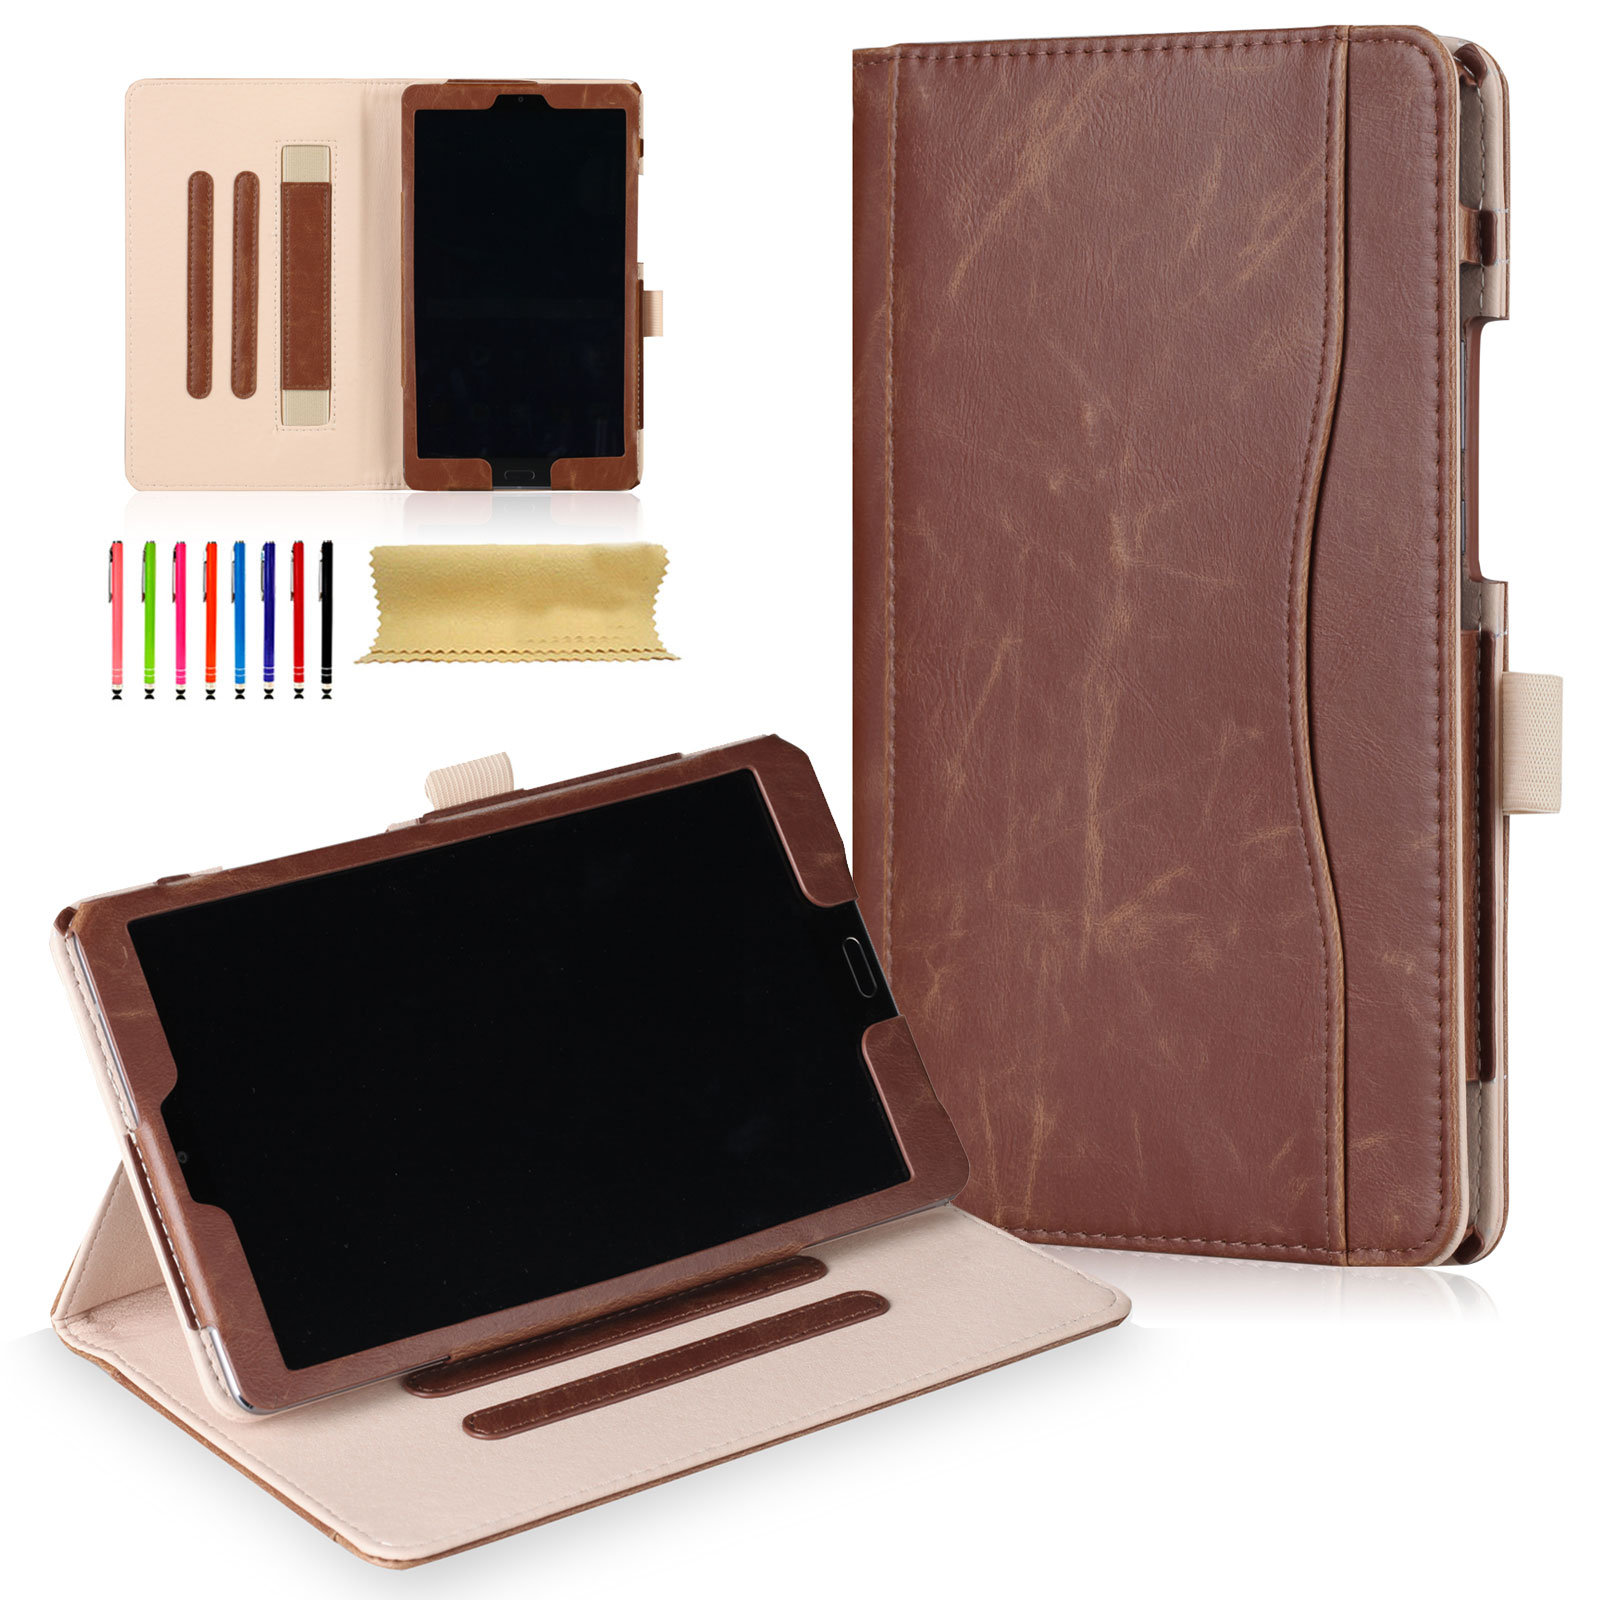 Huawei MediaPad M5 8.4-inch Tablet Case, Goodest Slim Shell Book Style Folio Flip Stand Cover Case with Auto Wake/ Sleep, Document Slots for Huawei MediaPad M5 8.4 Inch 2018 Version Tablet, Brown